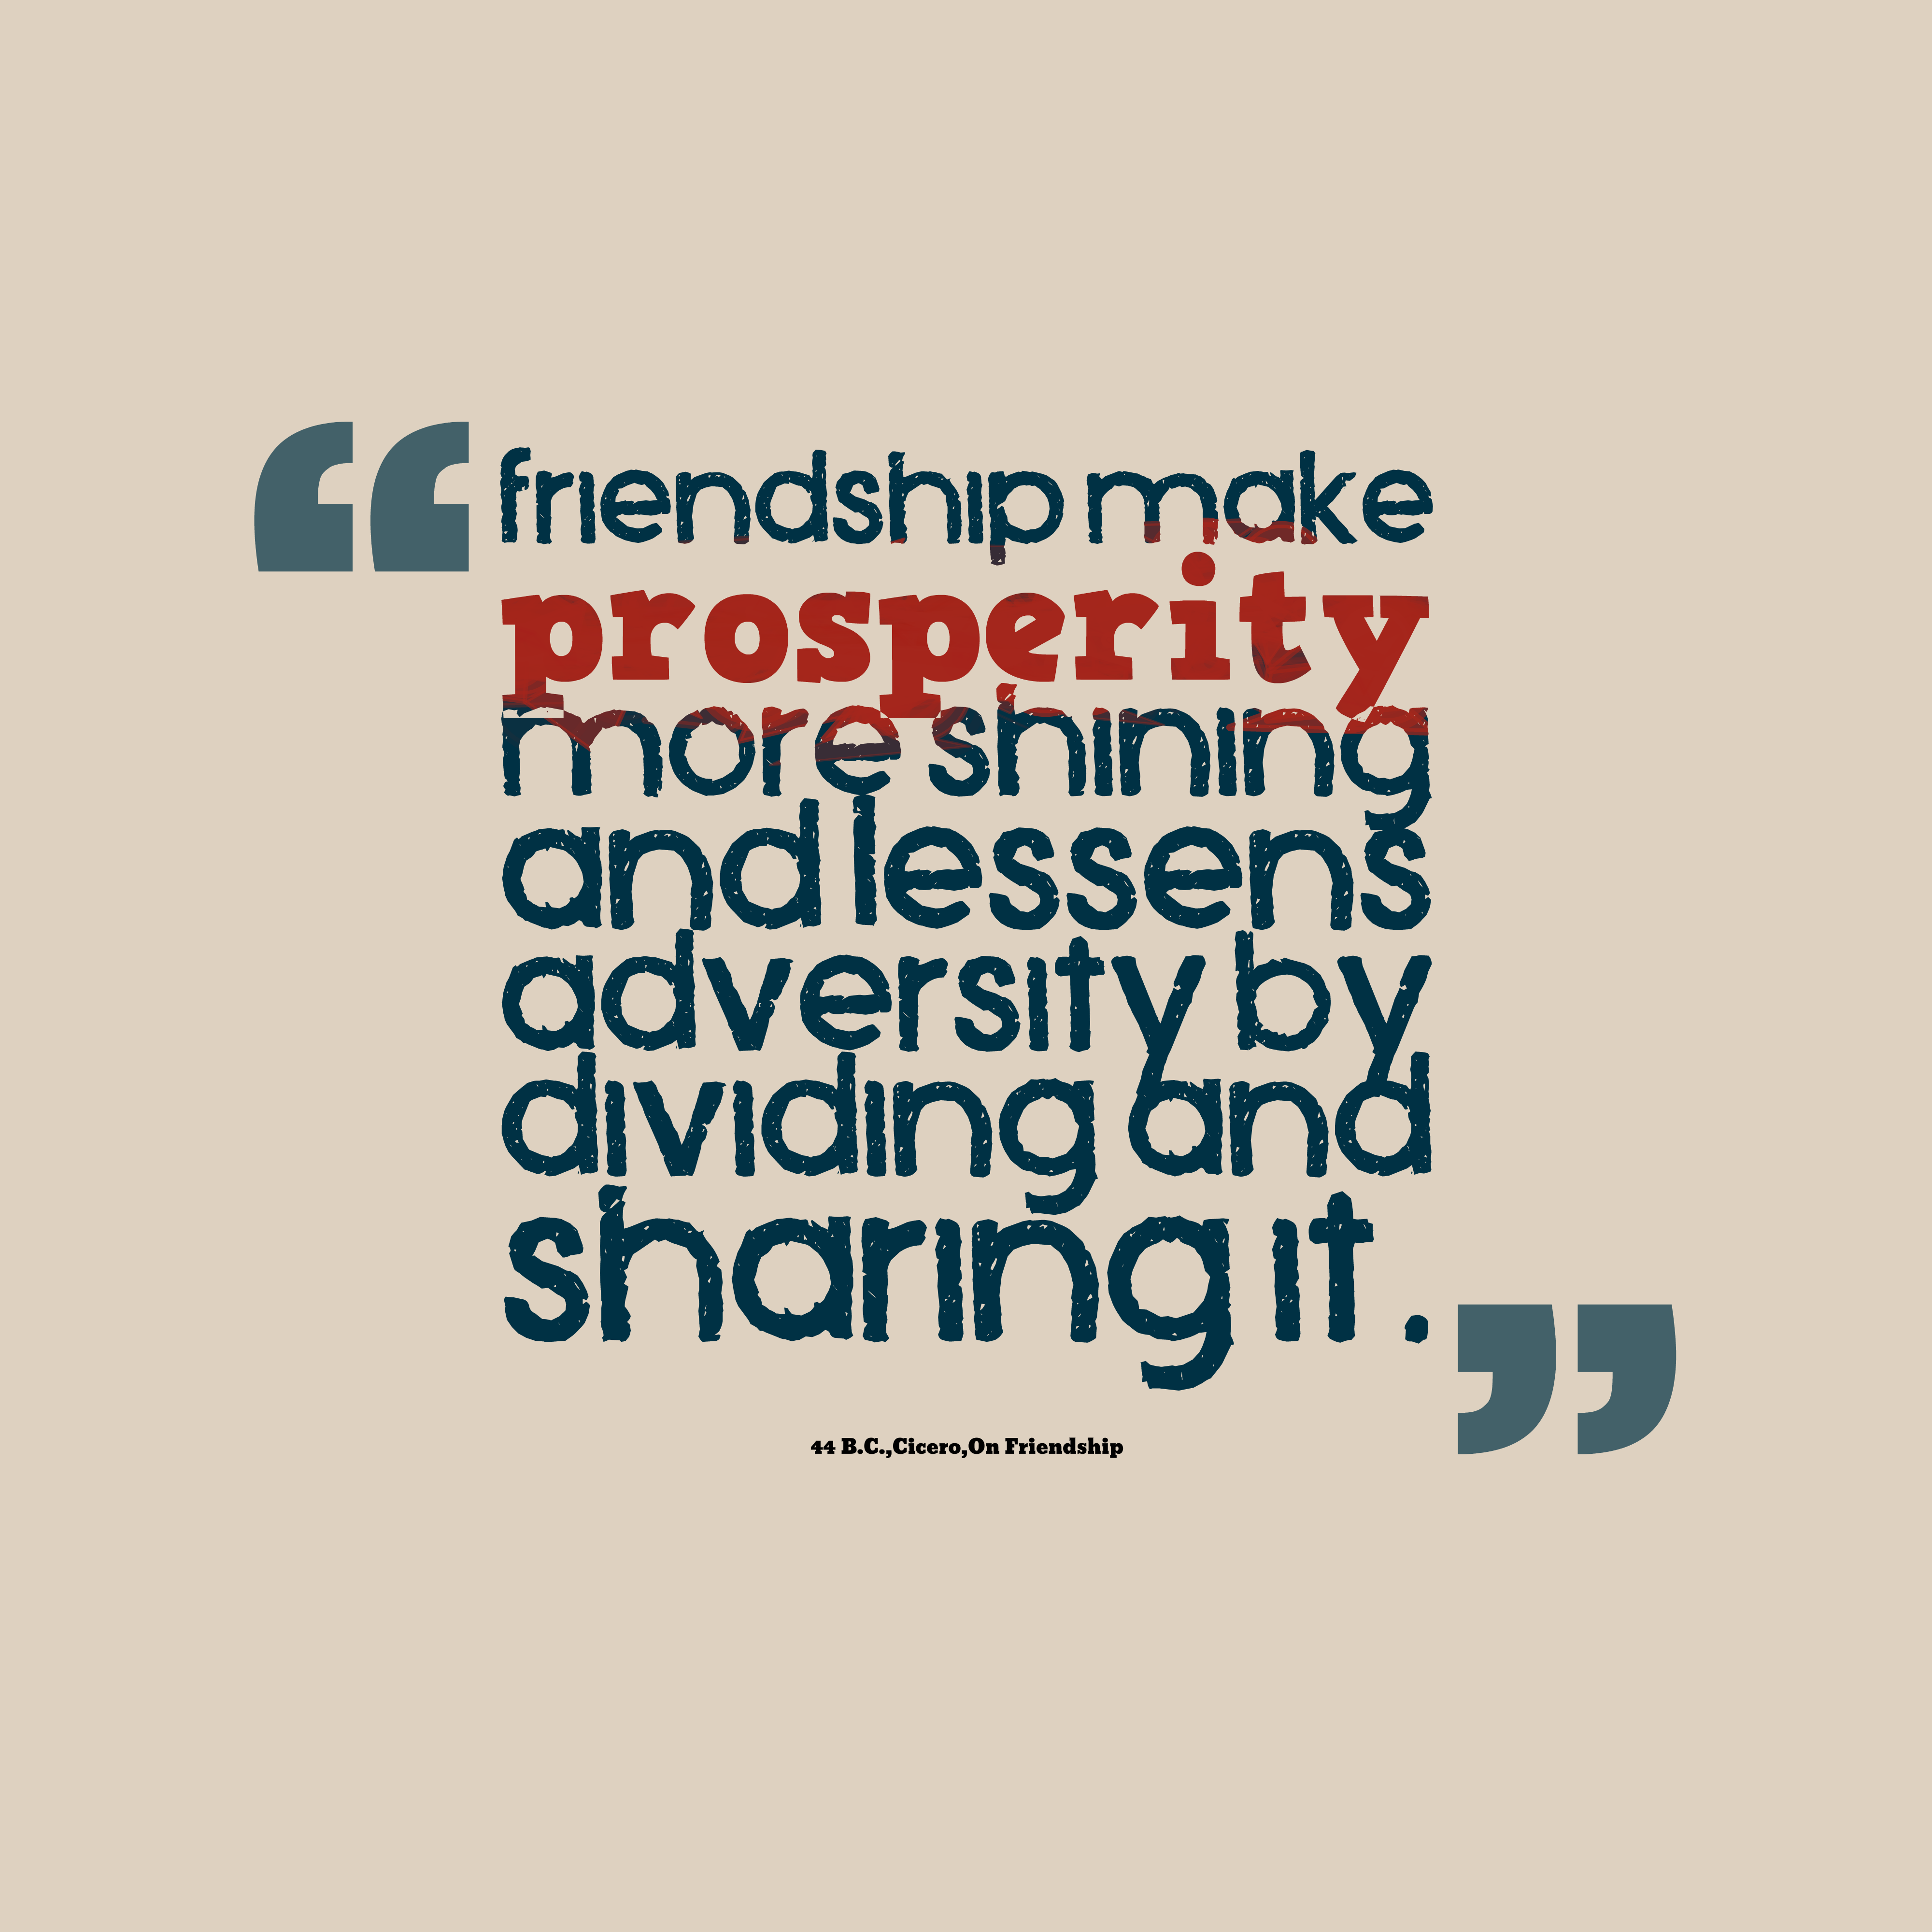 Quotes image of Friendship make prosperity more shining and lessens adversity by dividing and sharing it.